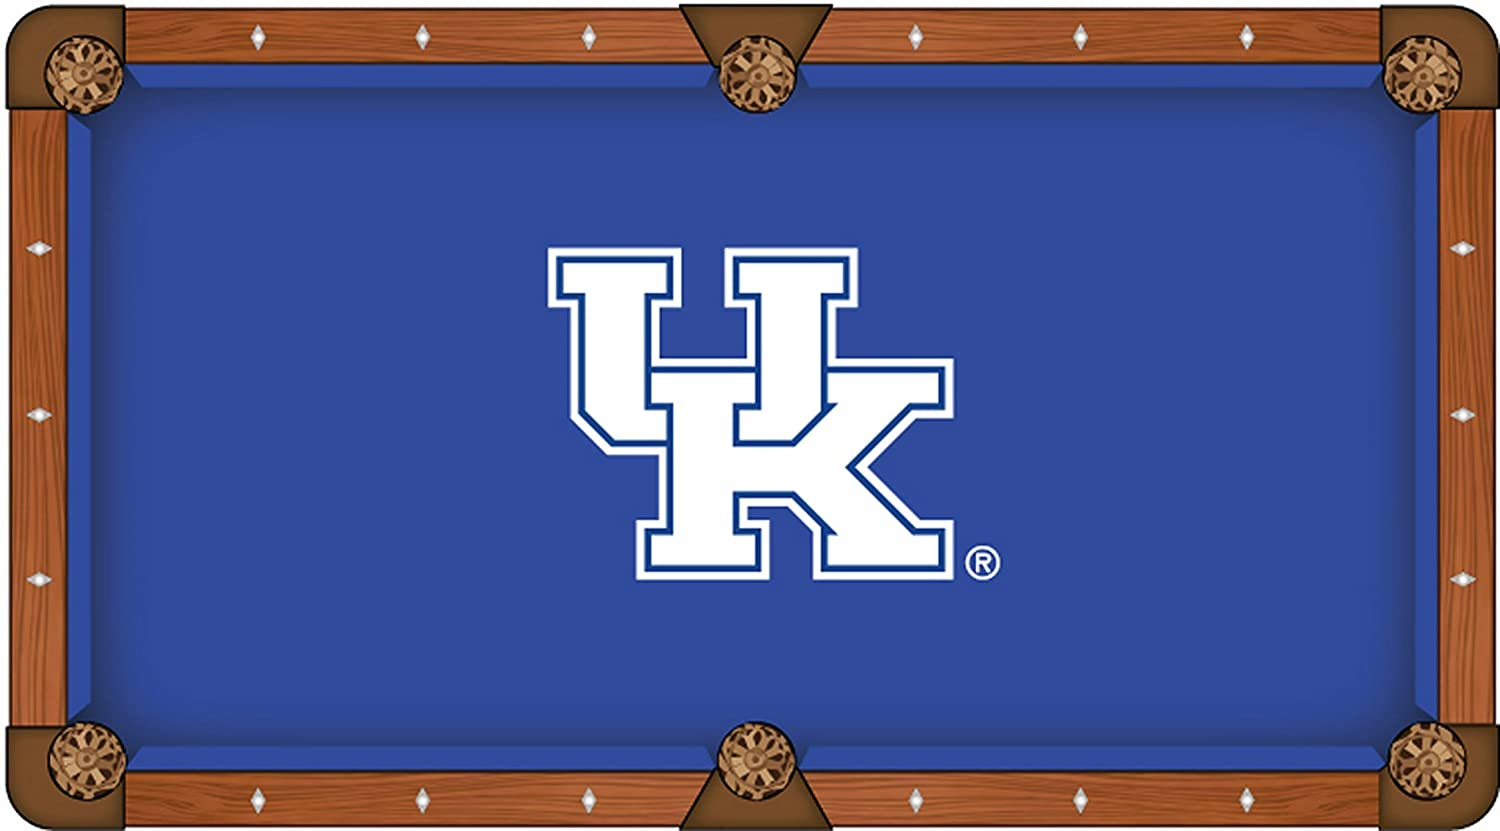 Kentucky Wildcats HBSブルーwithホワイト